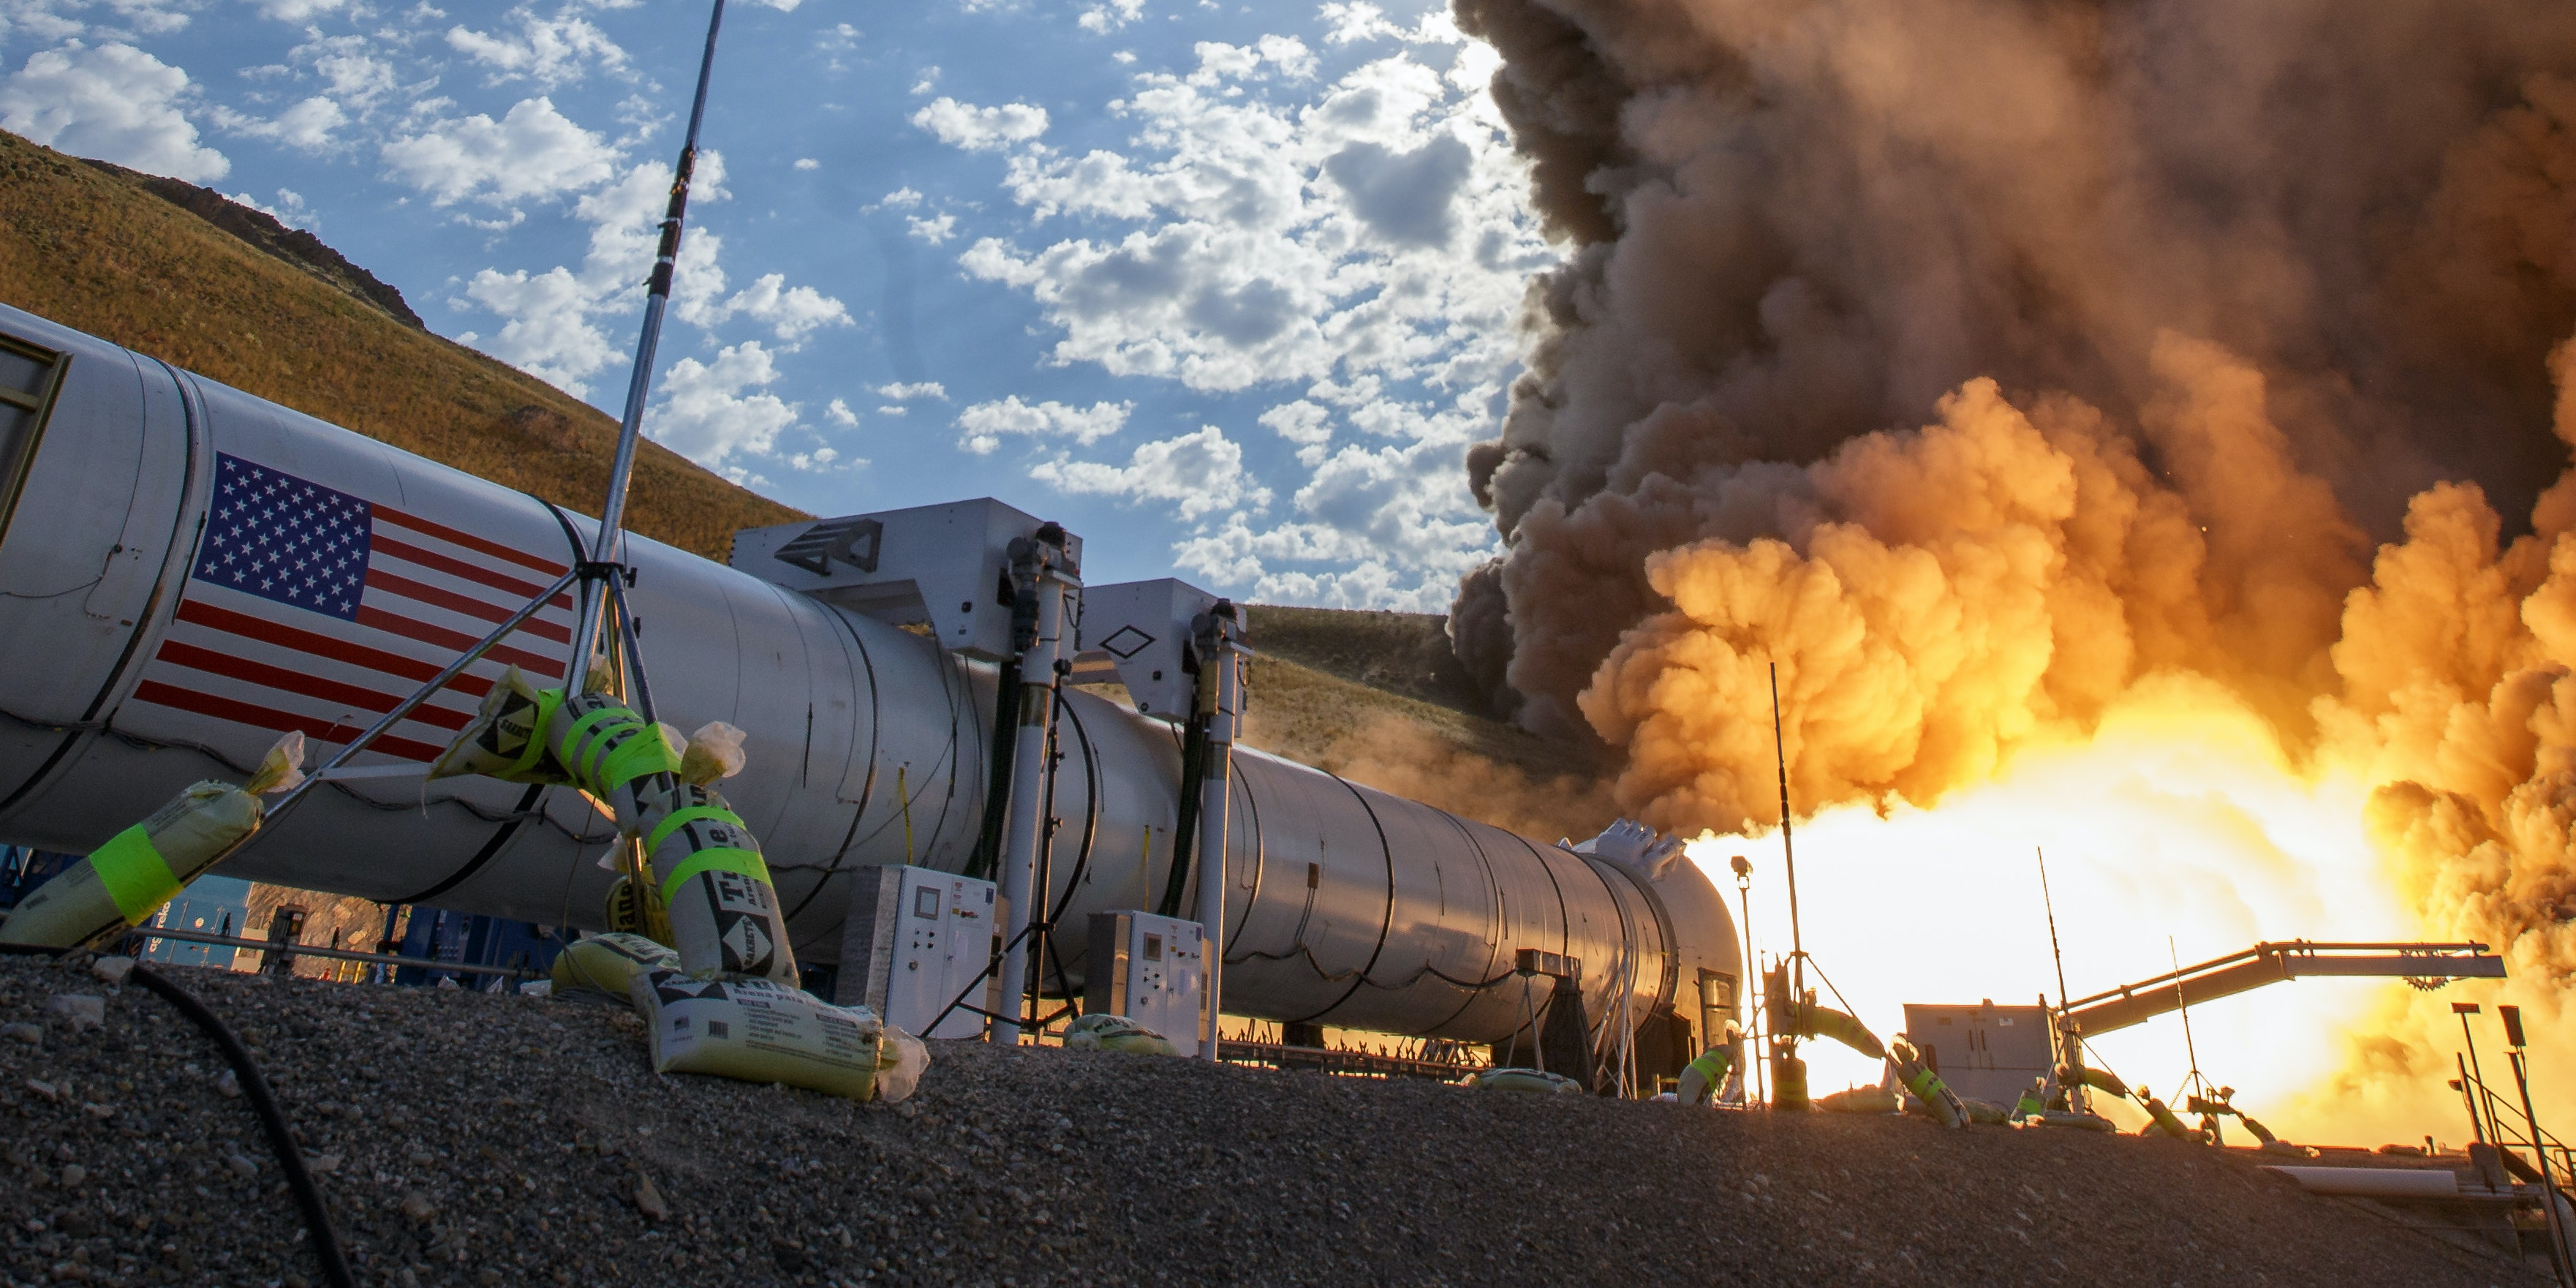 NASA shared photos of the Space Launch System that will take mankind to Mars.